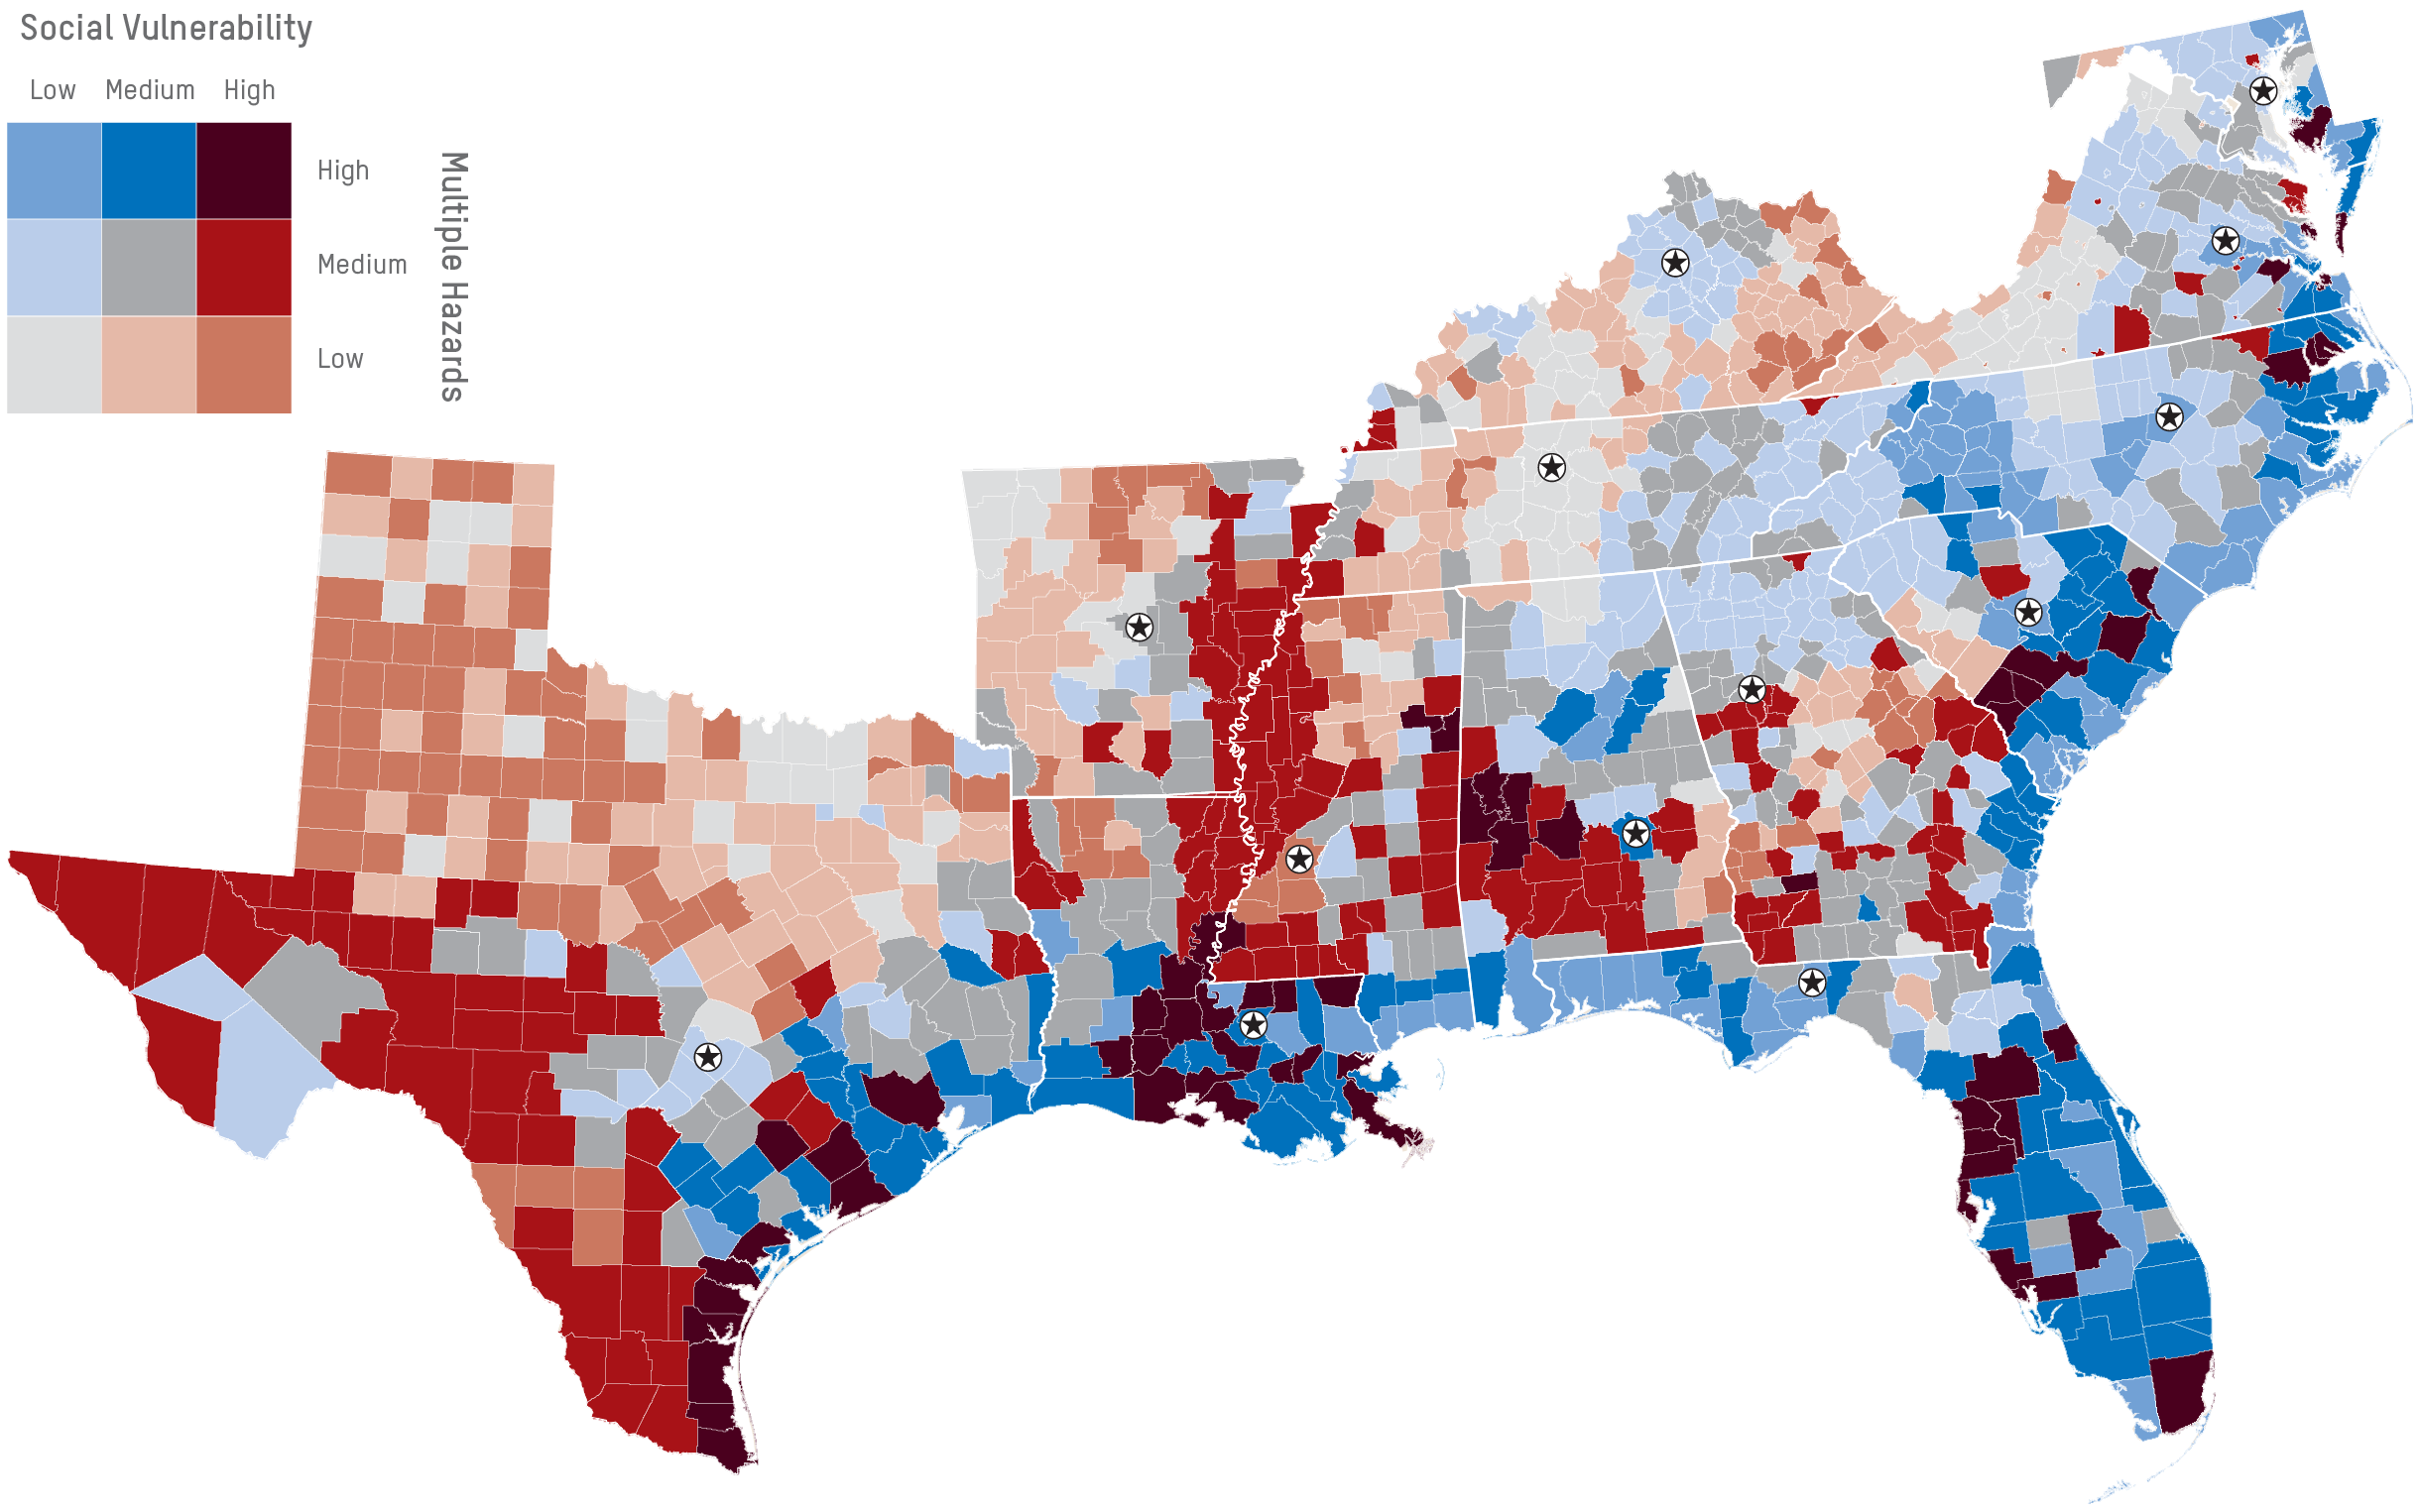 This Map Covers 13 States In The Southeast United States It Ilrates The Convergence Of Social Vulnerability Factors Such As Economic Standing And Age